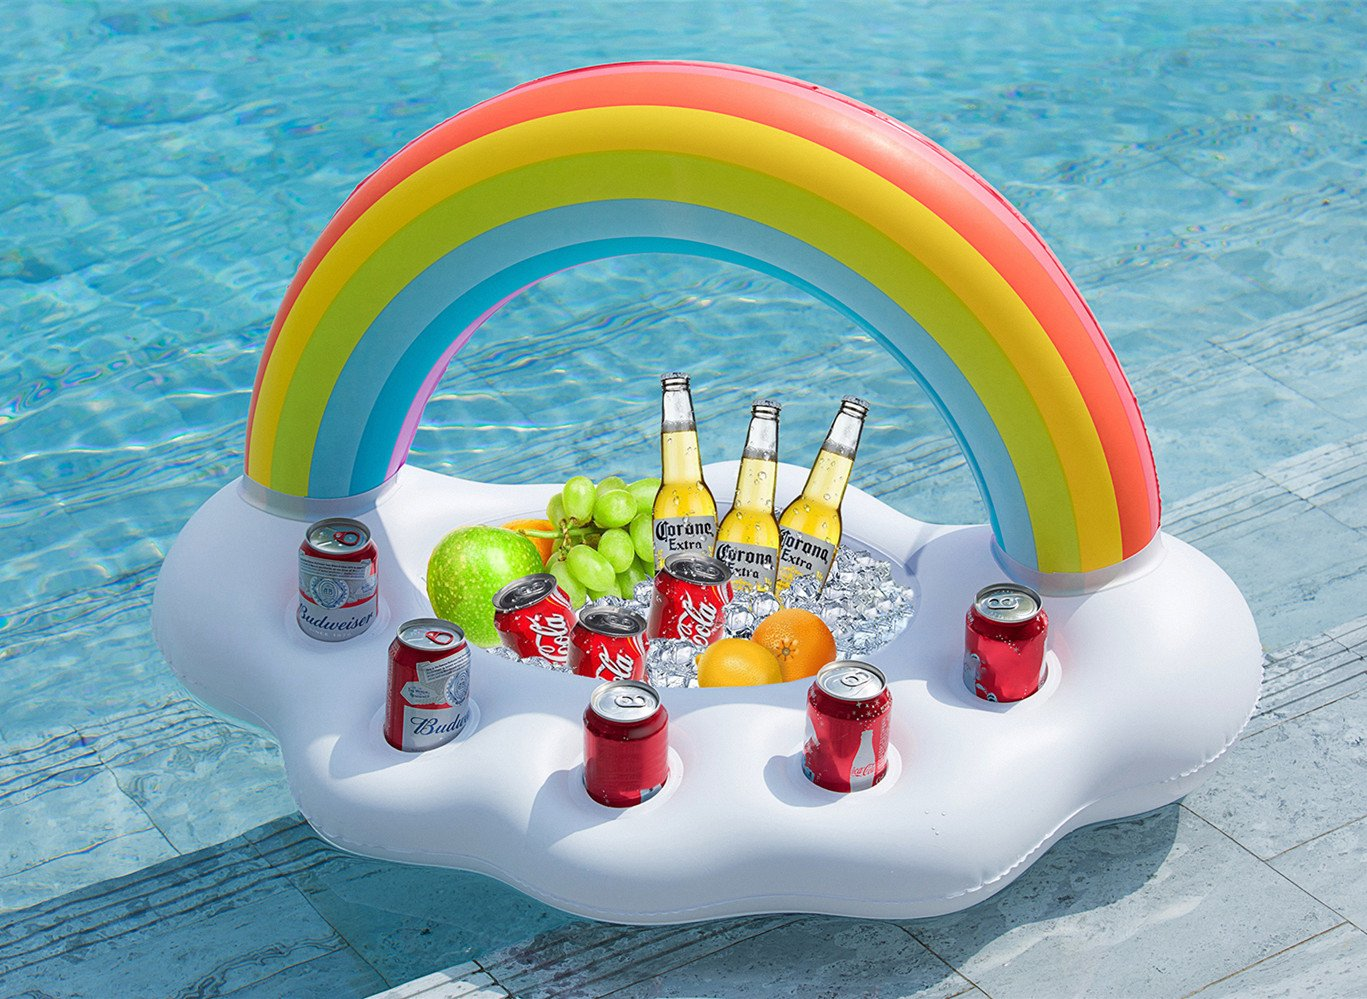 Jasonwell Inflatable Rainbow Cloud Drink Holder Floating Beverage Salad Fruit Serving Bar Pool Float Party Accessories Summer Beach Leisure Cup Bottle Holder Water Fun Decorations Toys Kids Adults by Jasonwell